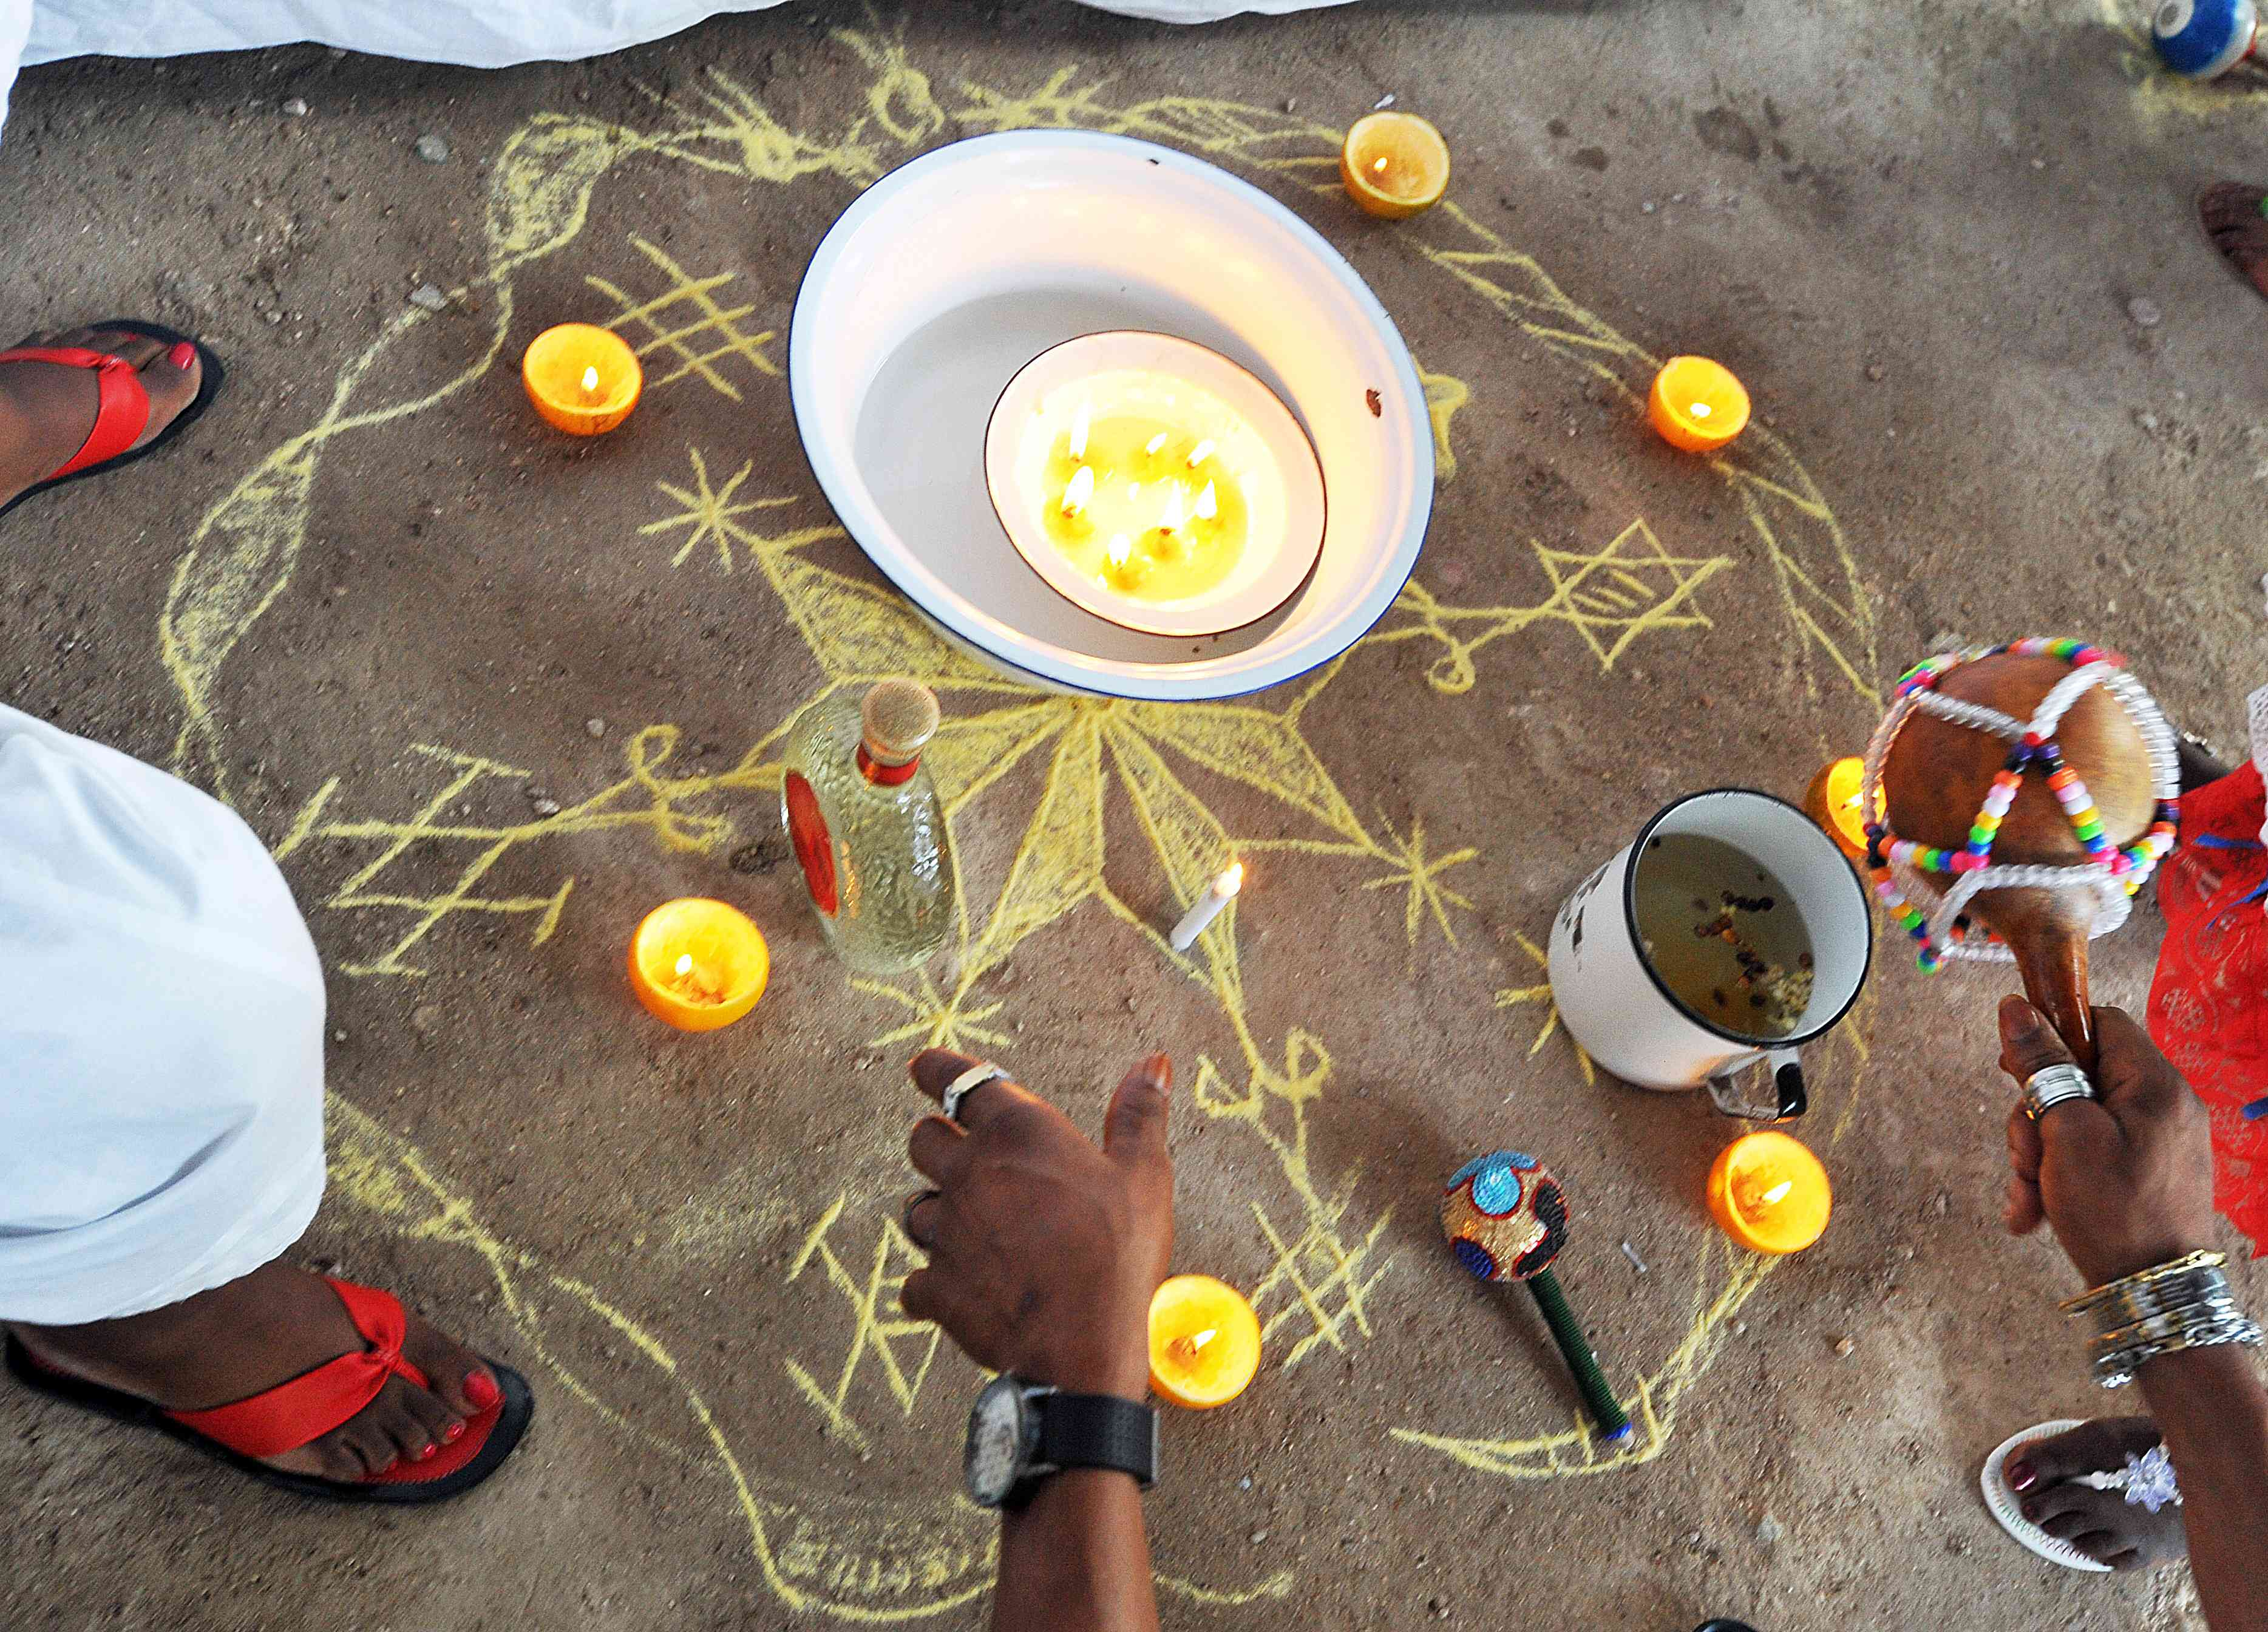 Offerings made to Erzulie